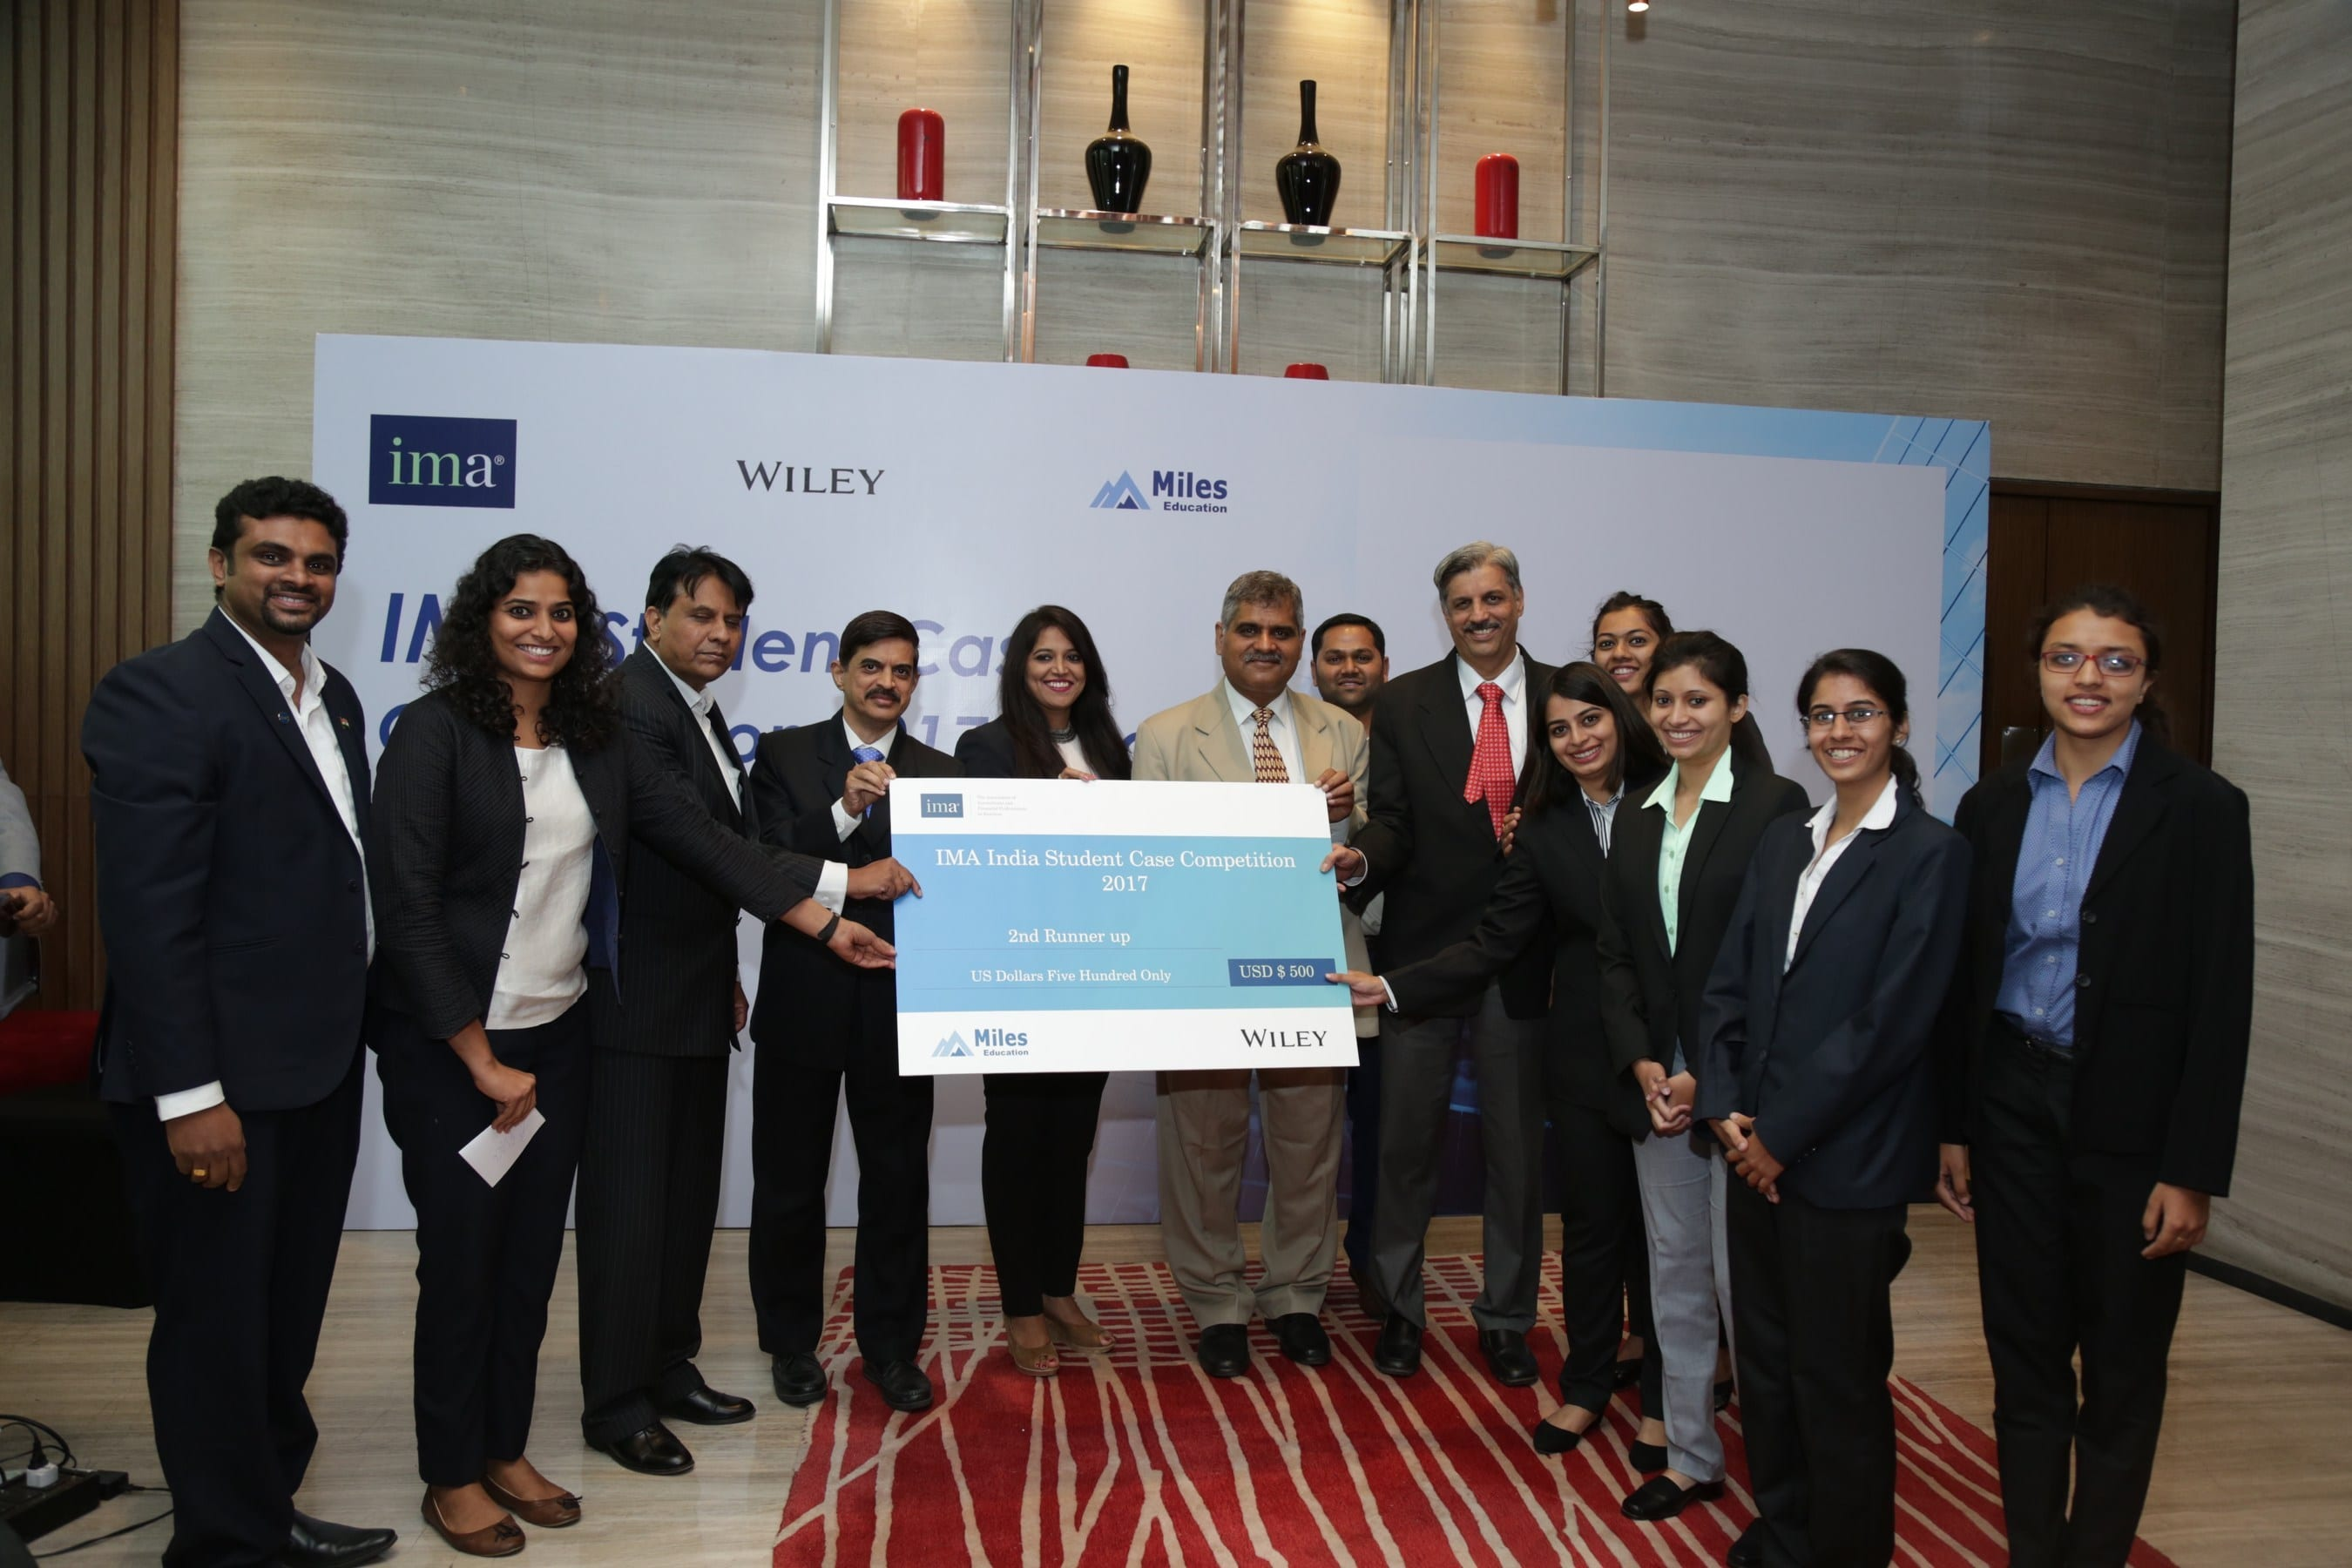 IMA announces student case competition winners in India